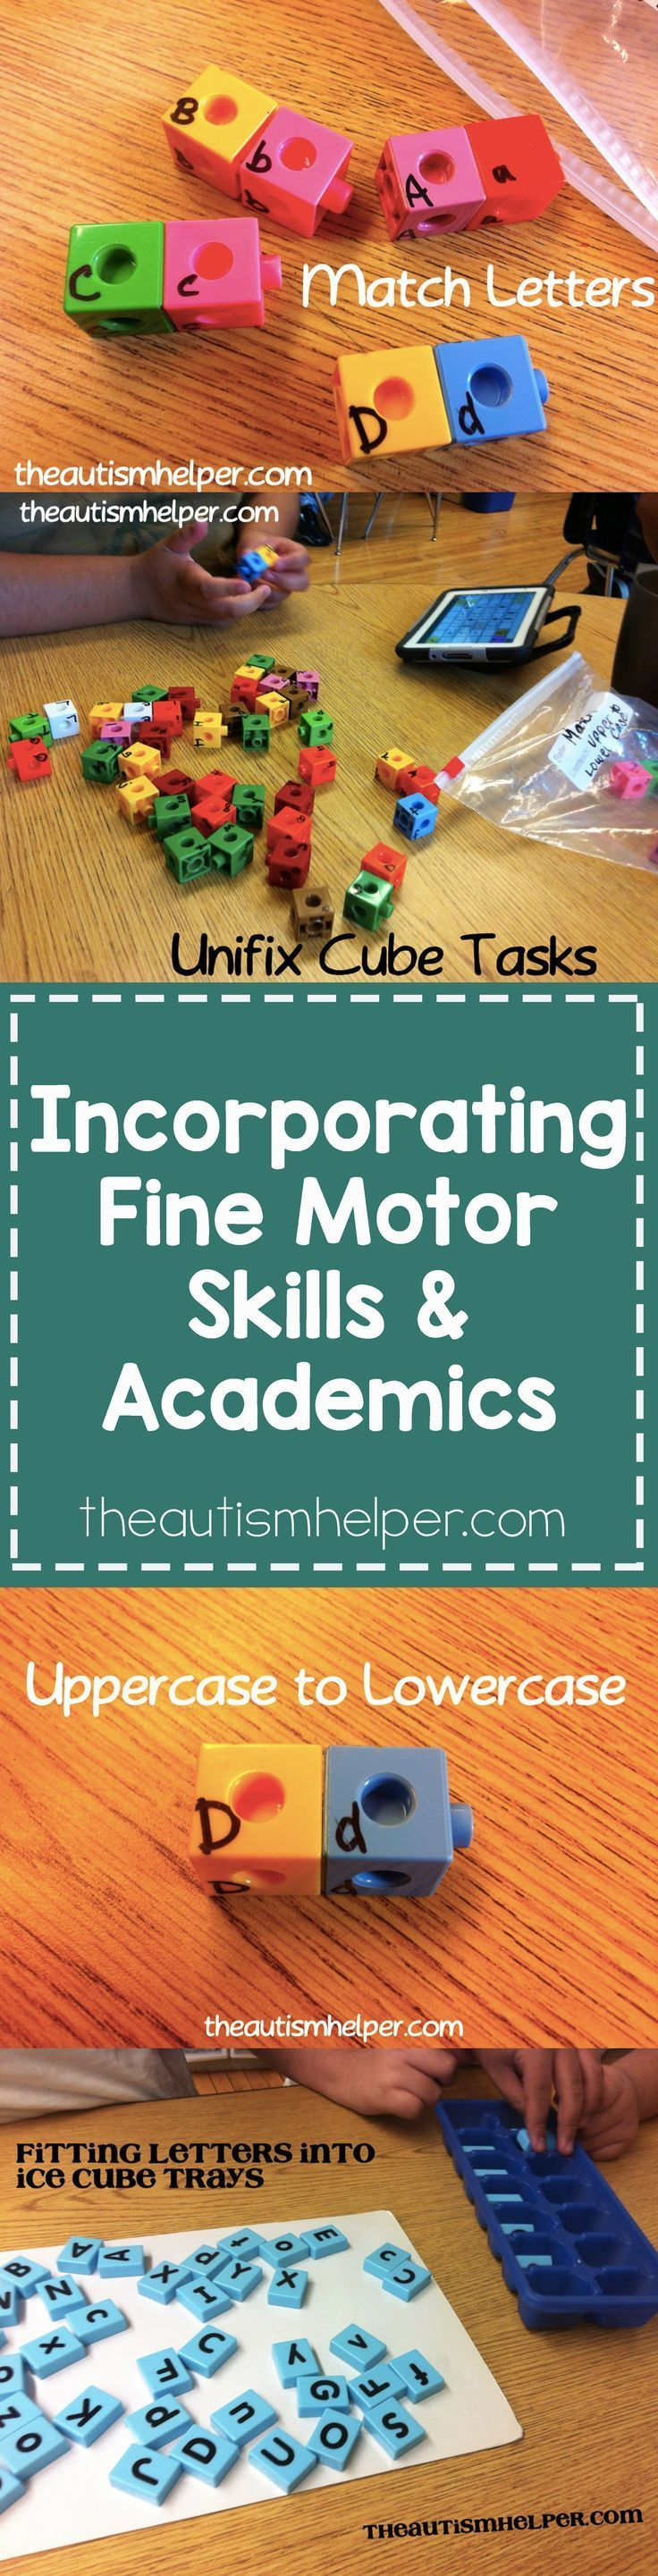 19 best A learning images on Pinterest   Learning, School and ...